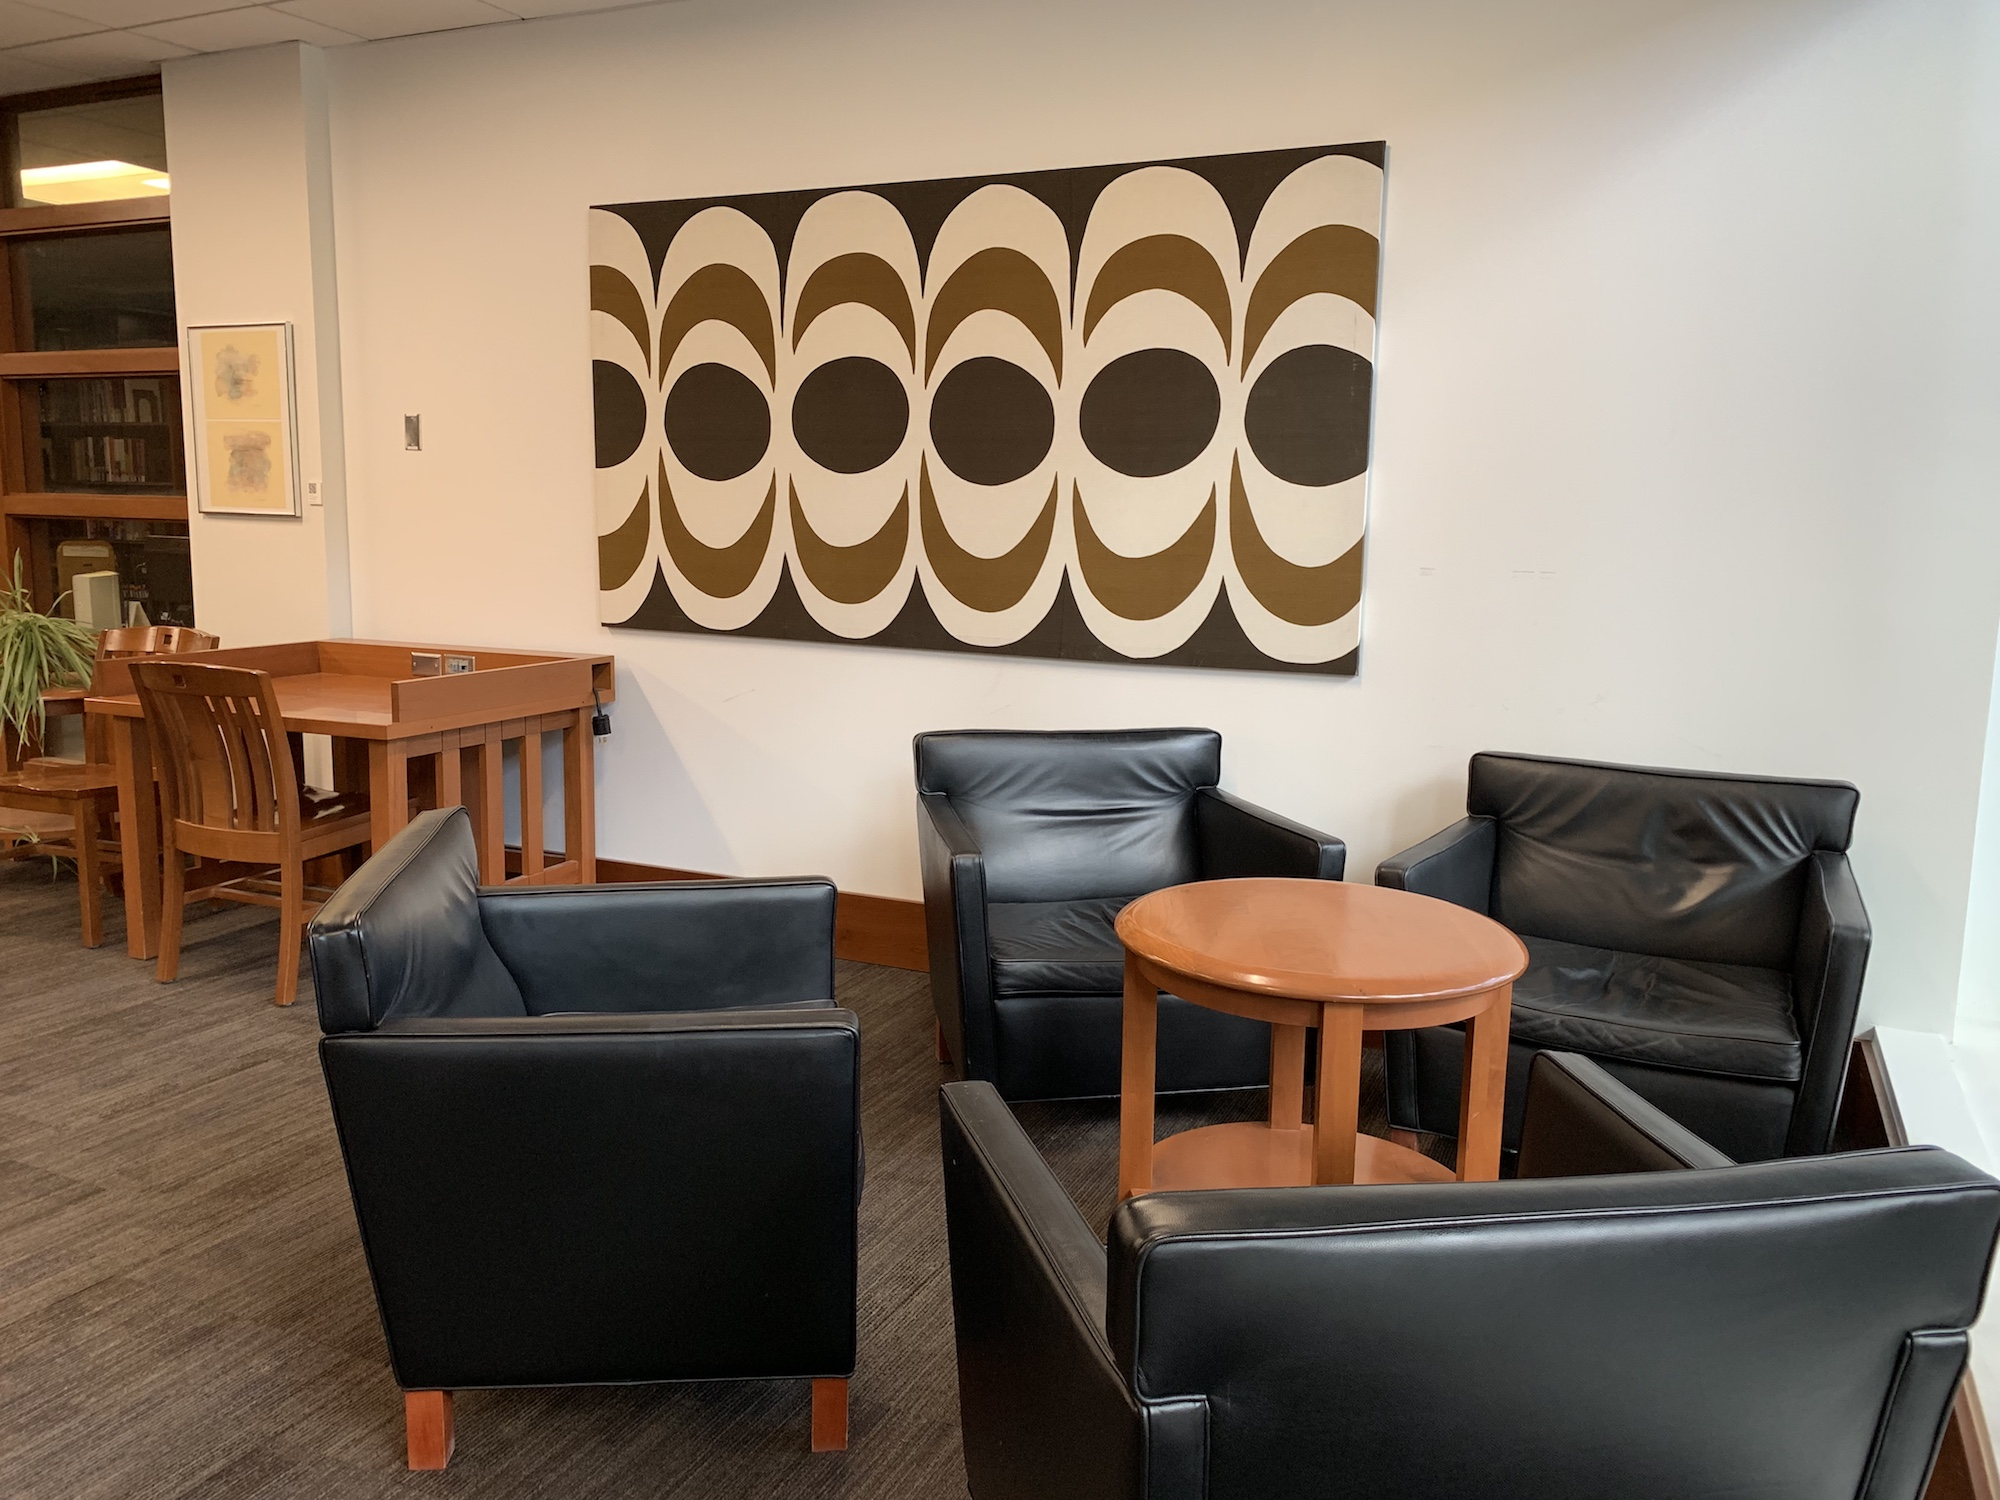 A group of four black chairs in the Fine Arts Library with a modern painting hung on the wall.